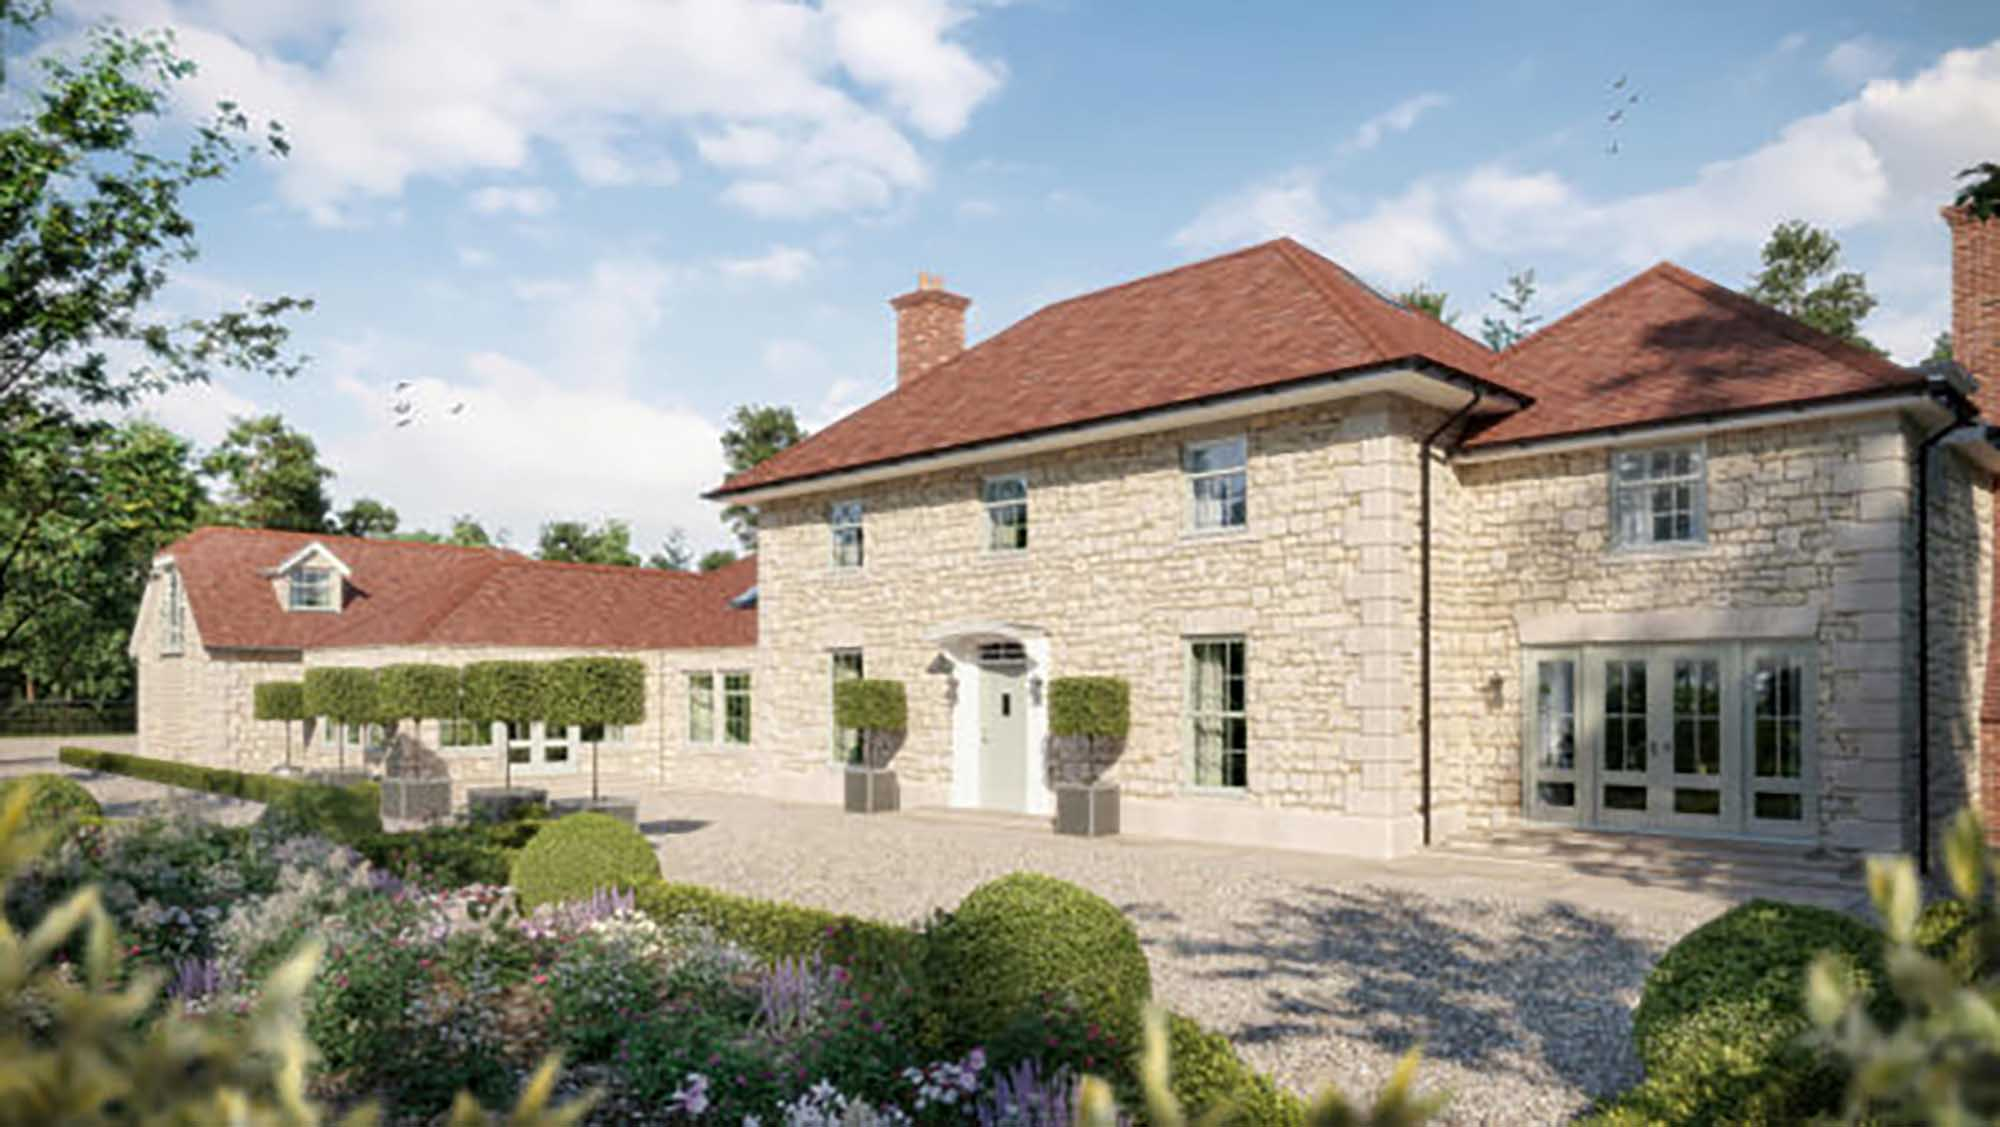 Fabulous new 5 bed family home with land.